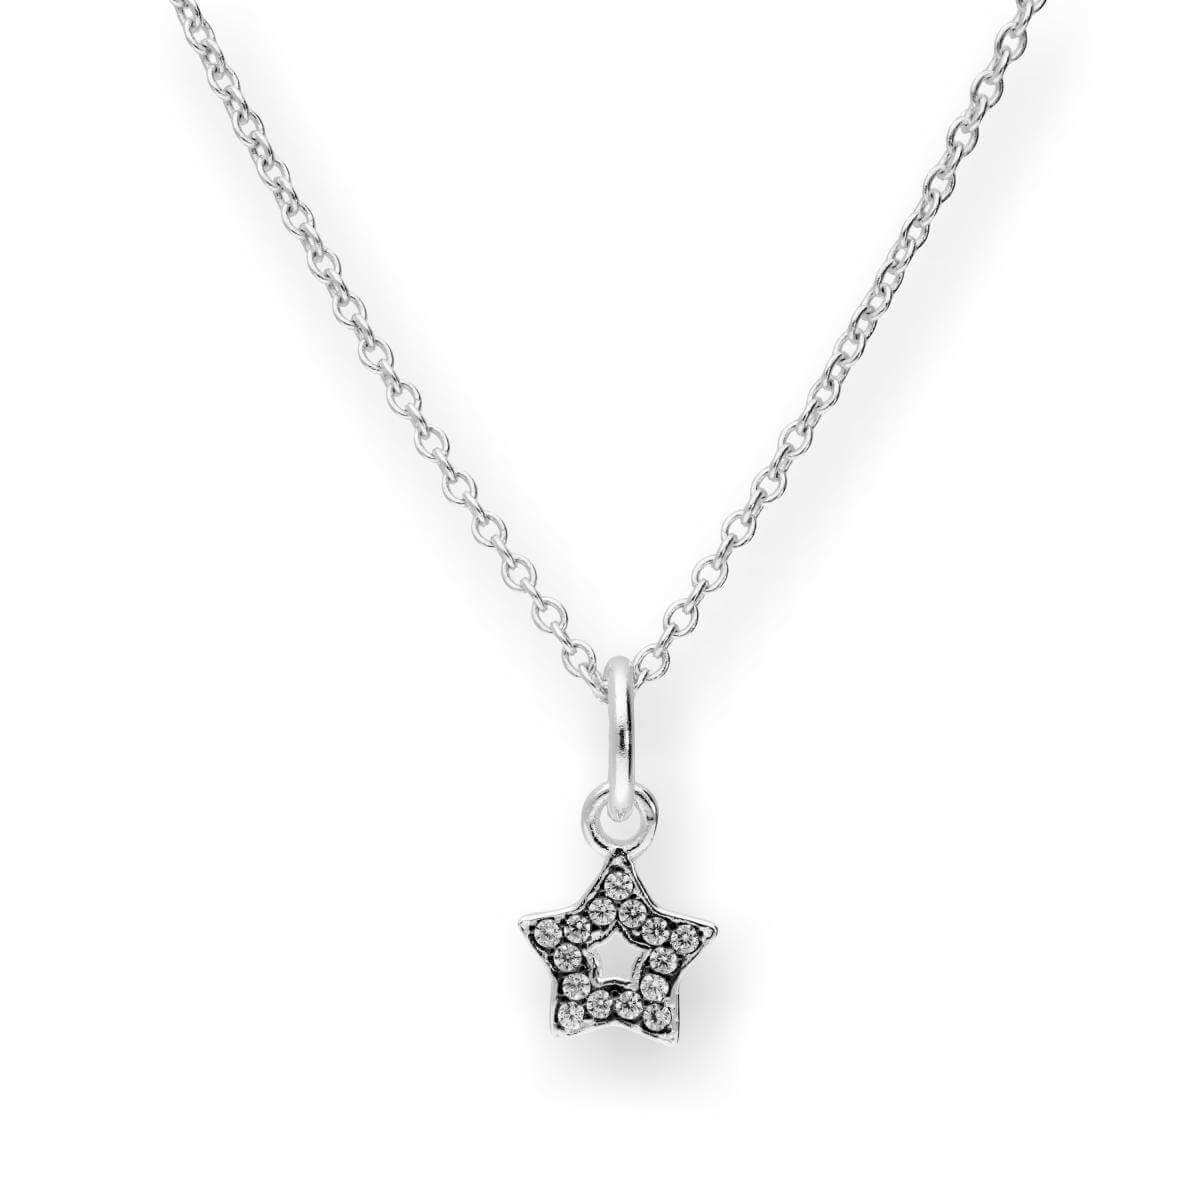 Sterling Silver & CZ Crystal Star Pendant w Black Rhodium Necklace 16-22 Inches